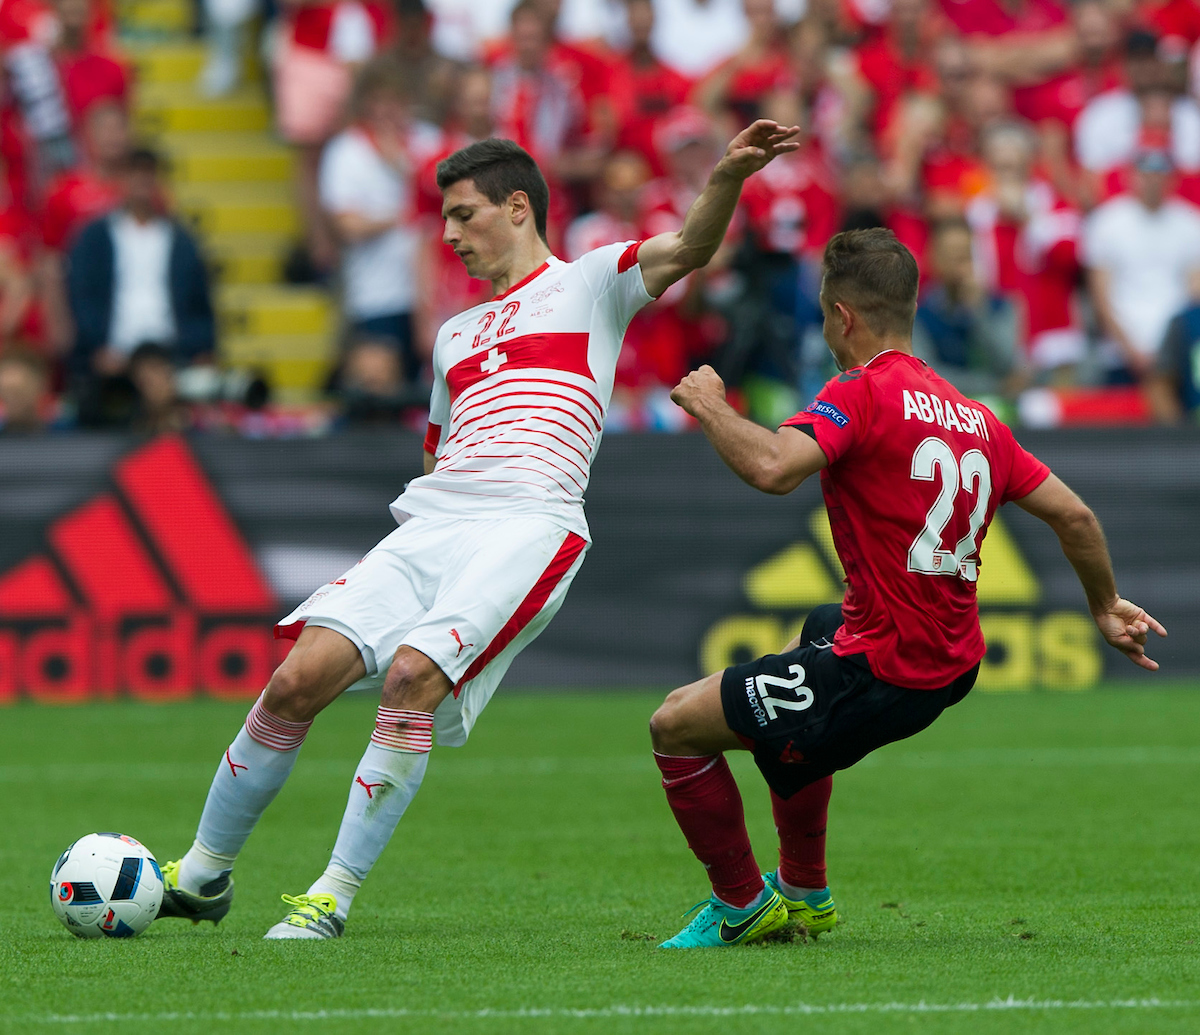 Fabian Schär of Switzerland and 1899 Hoffenheim kicks the ball past Amir Abrashi of Albania and SC Freiburg during the EURO 2016 match at Stade Bollaert-Delelis , Lens Picture by Anthony Stanley/Focus Images Ltd 07833 396363 11/06/2016